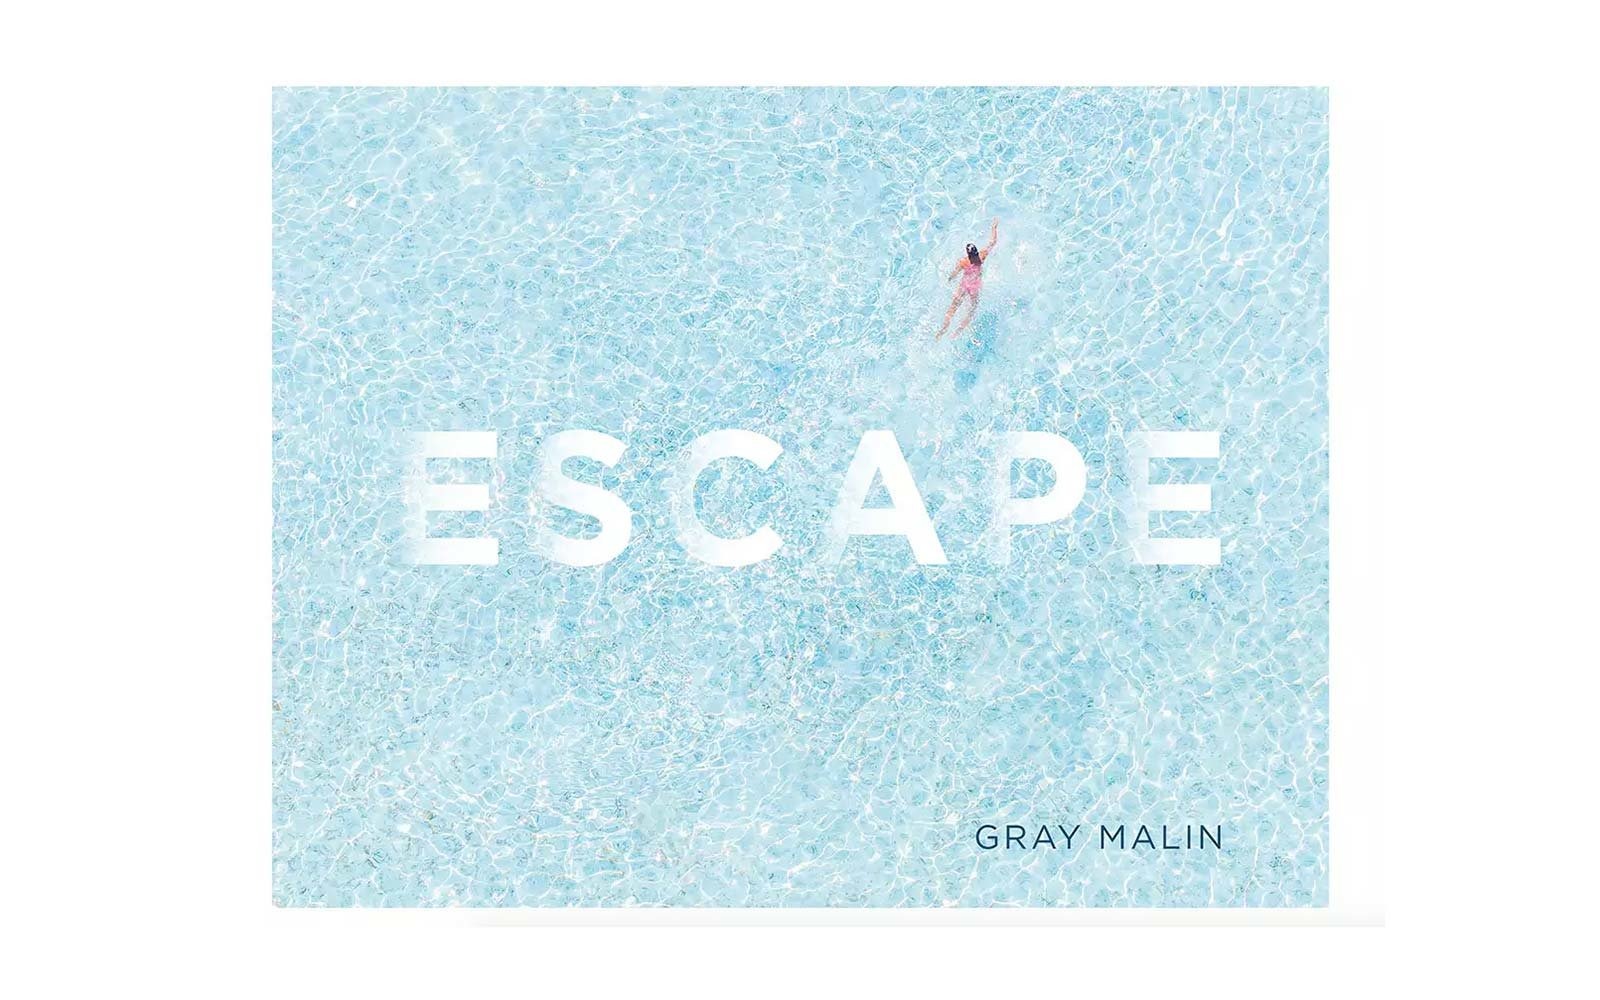 'Escape' by Gray Malin